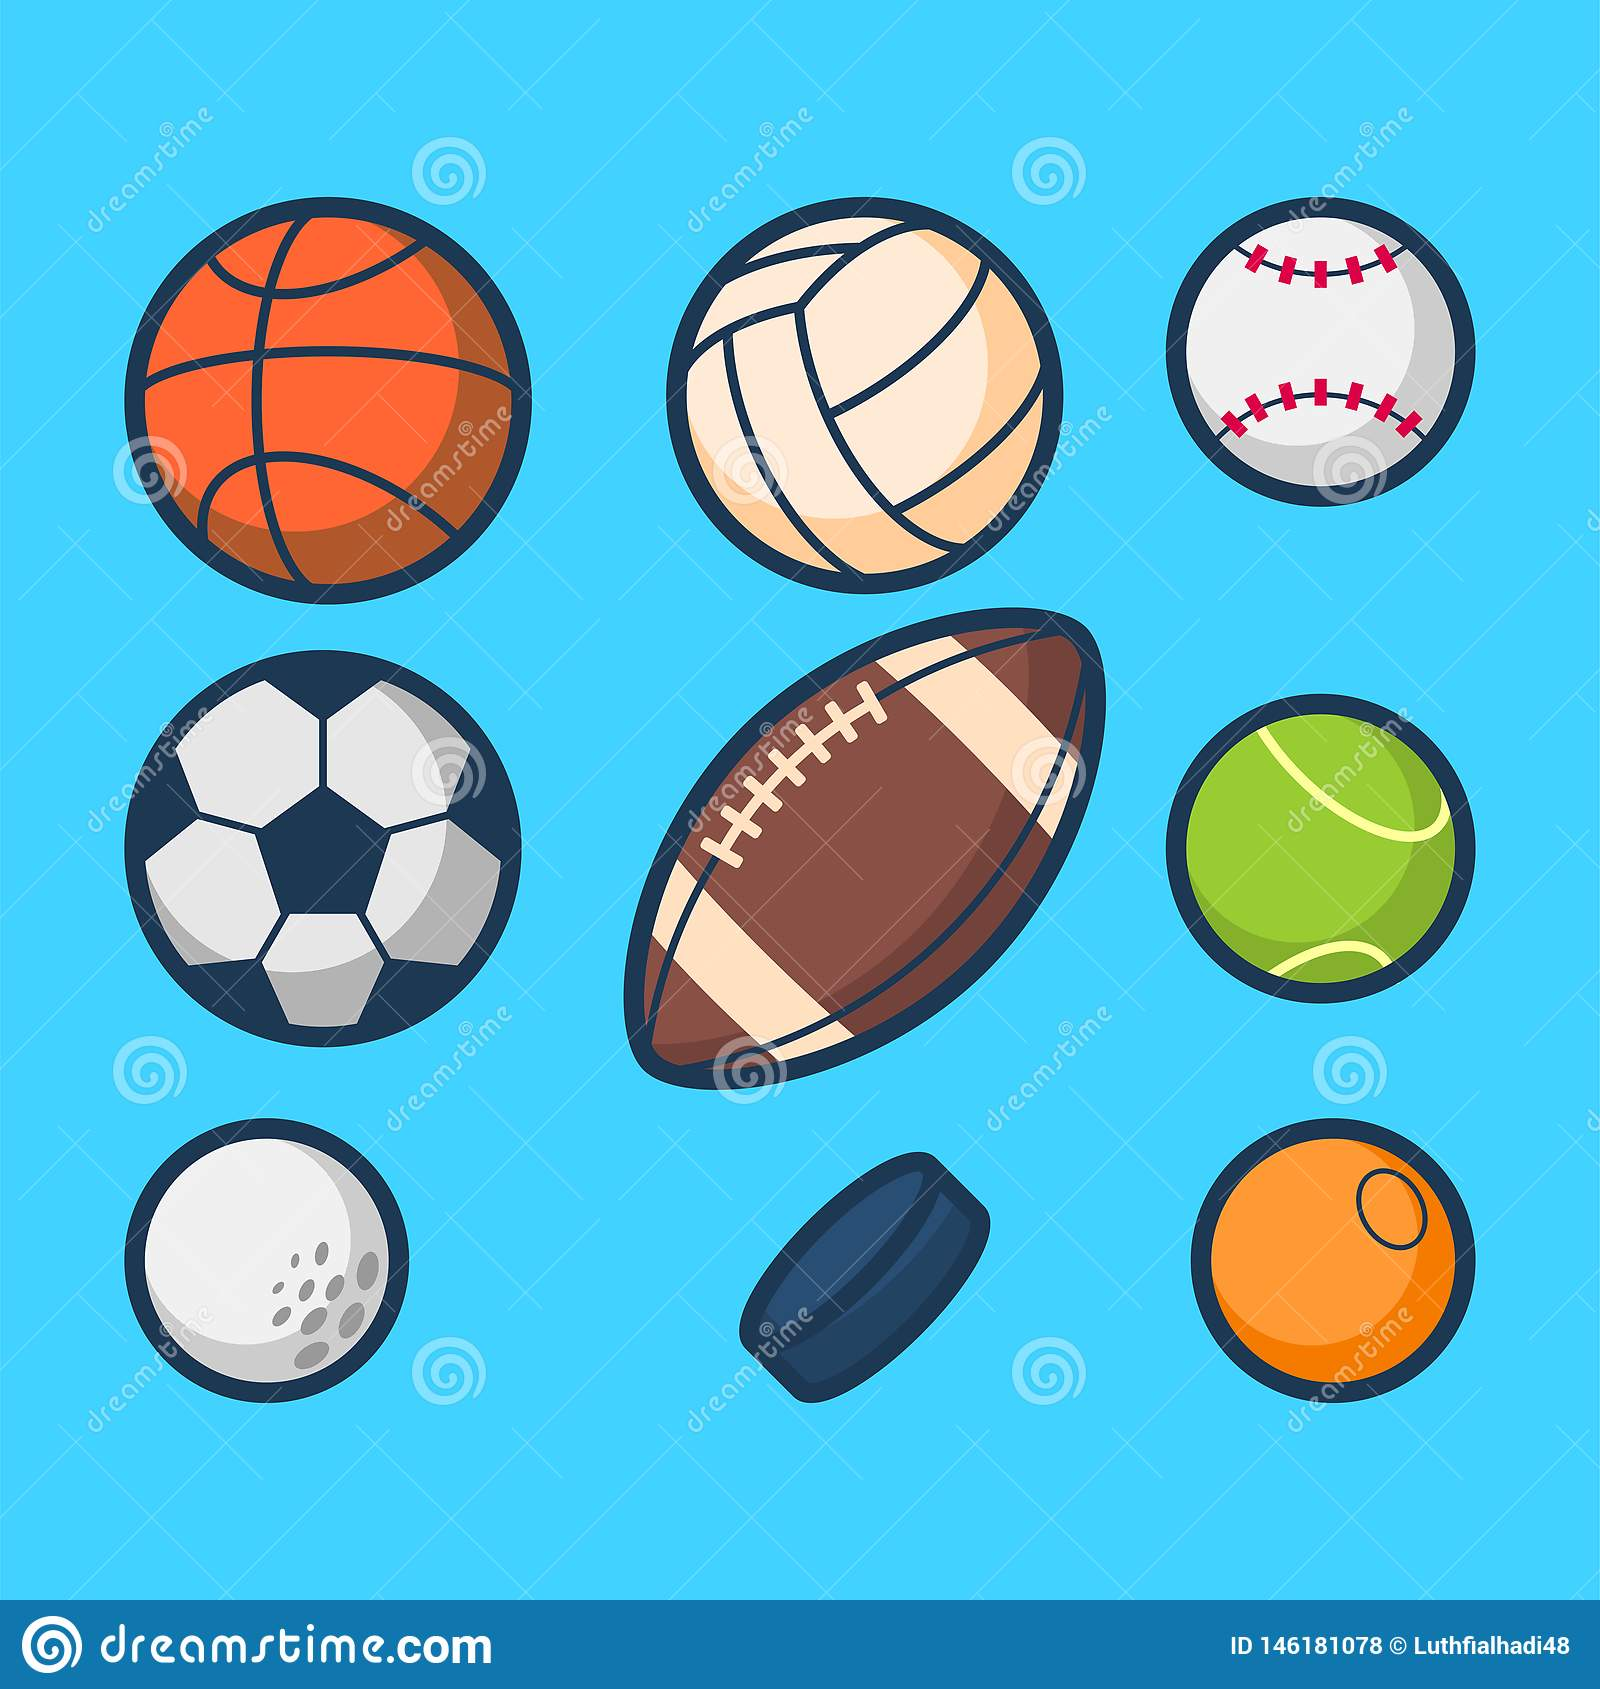 Simple Sport Ball Cartoon Vector Stock Vector Illustration Of Colors Editable 146181078